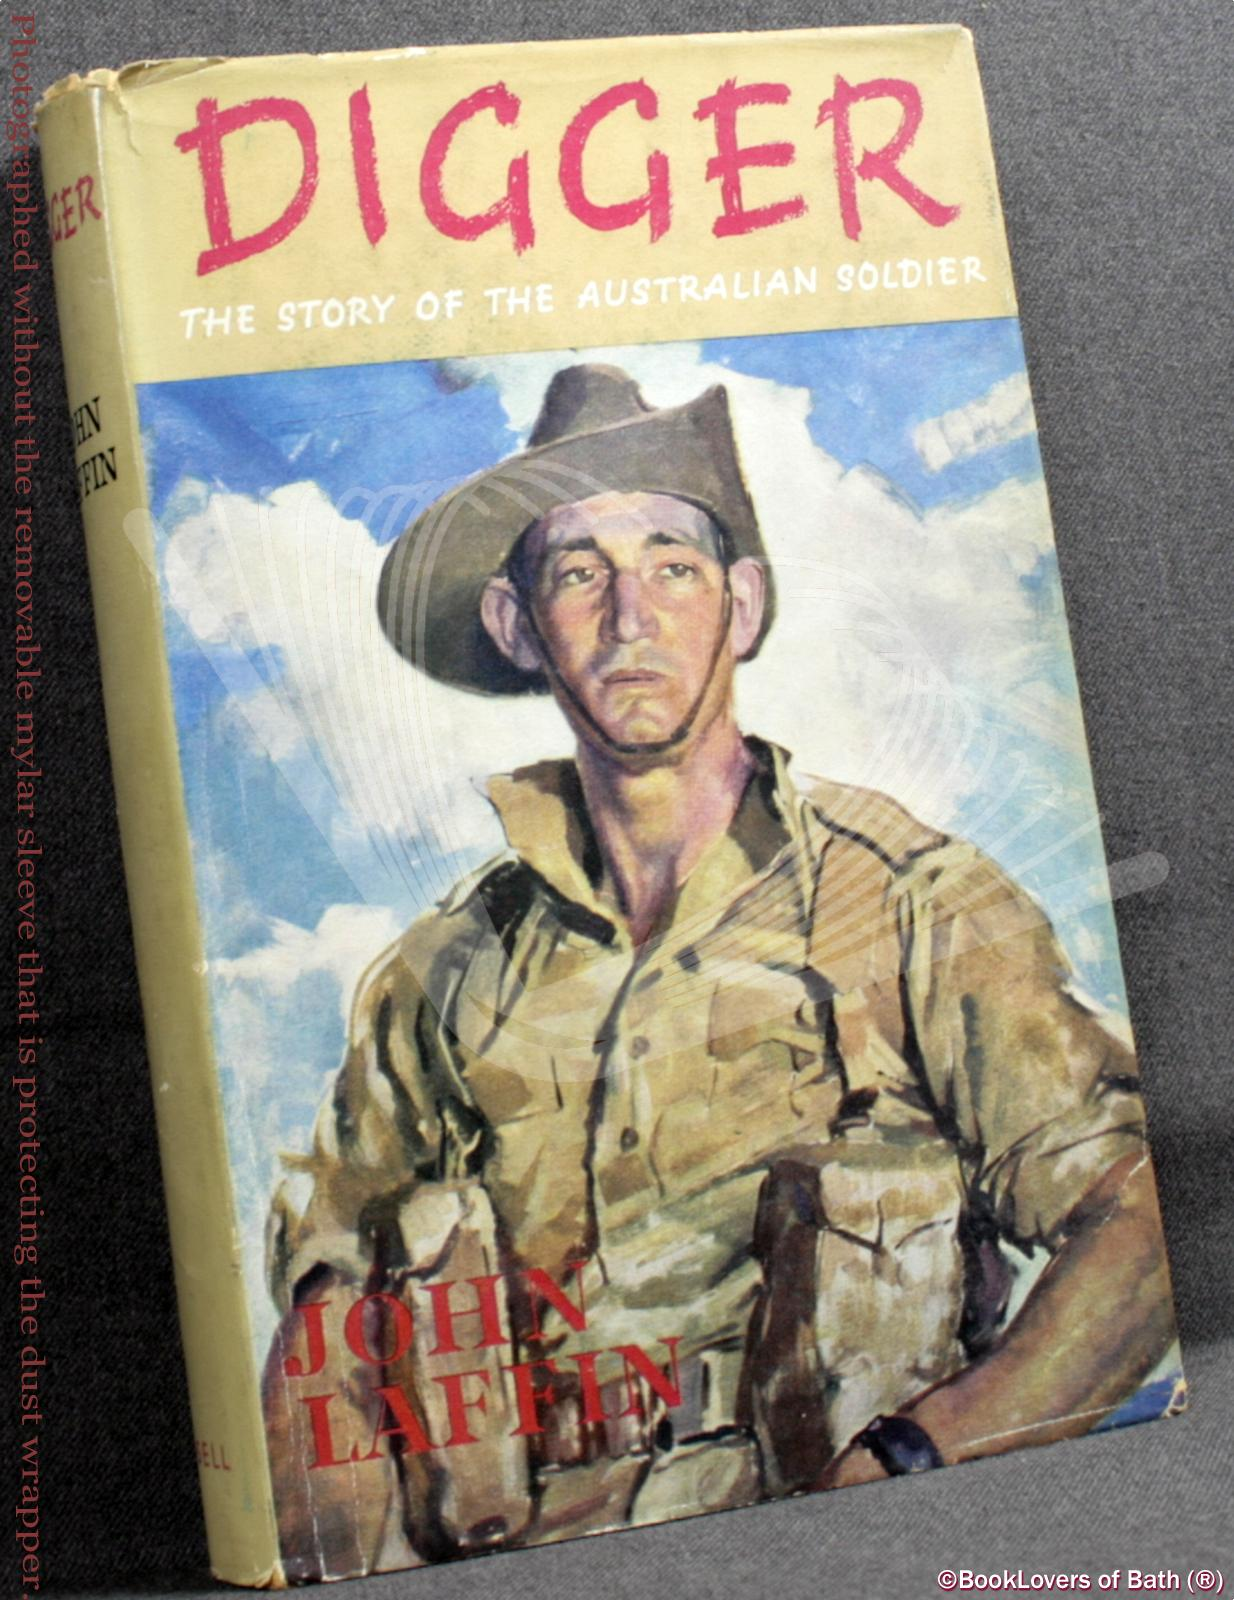 Digger: The Story of the Australian Soldier - John Laffin